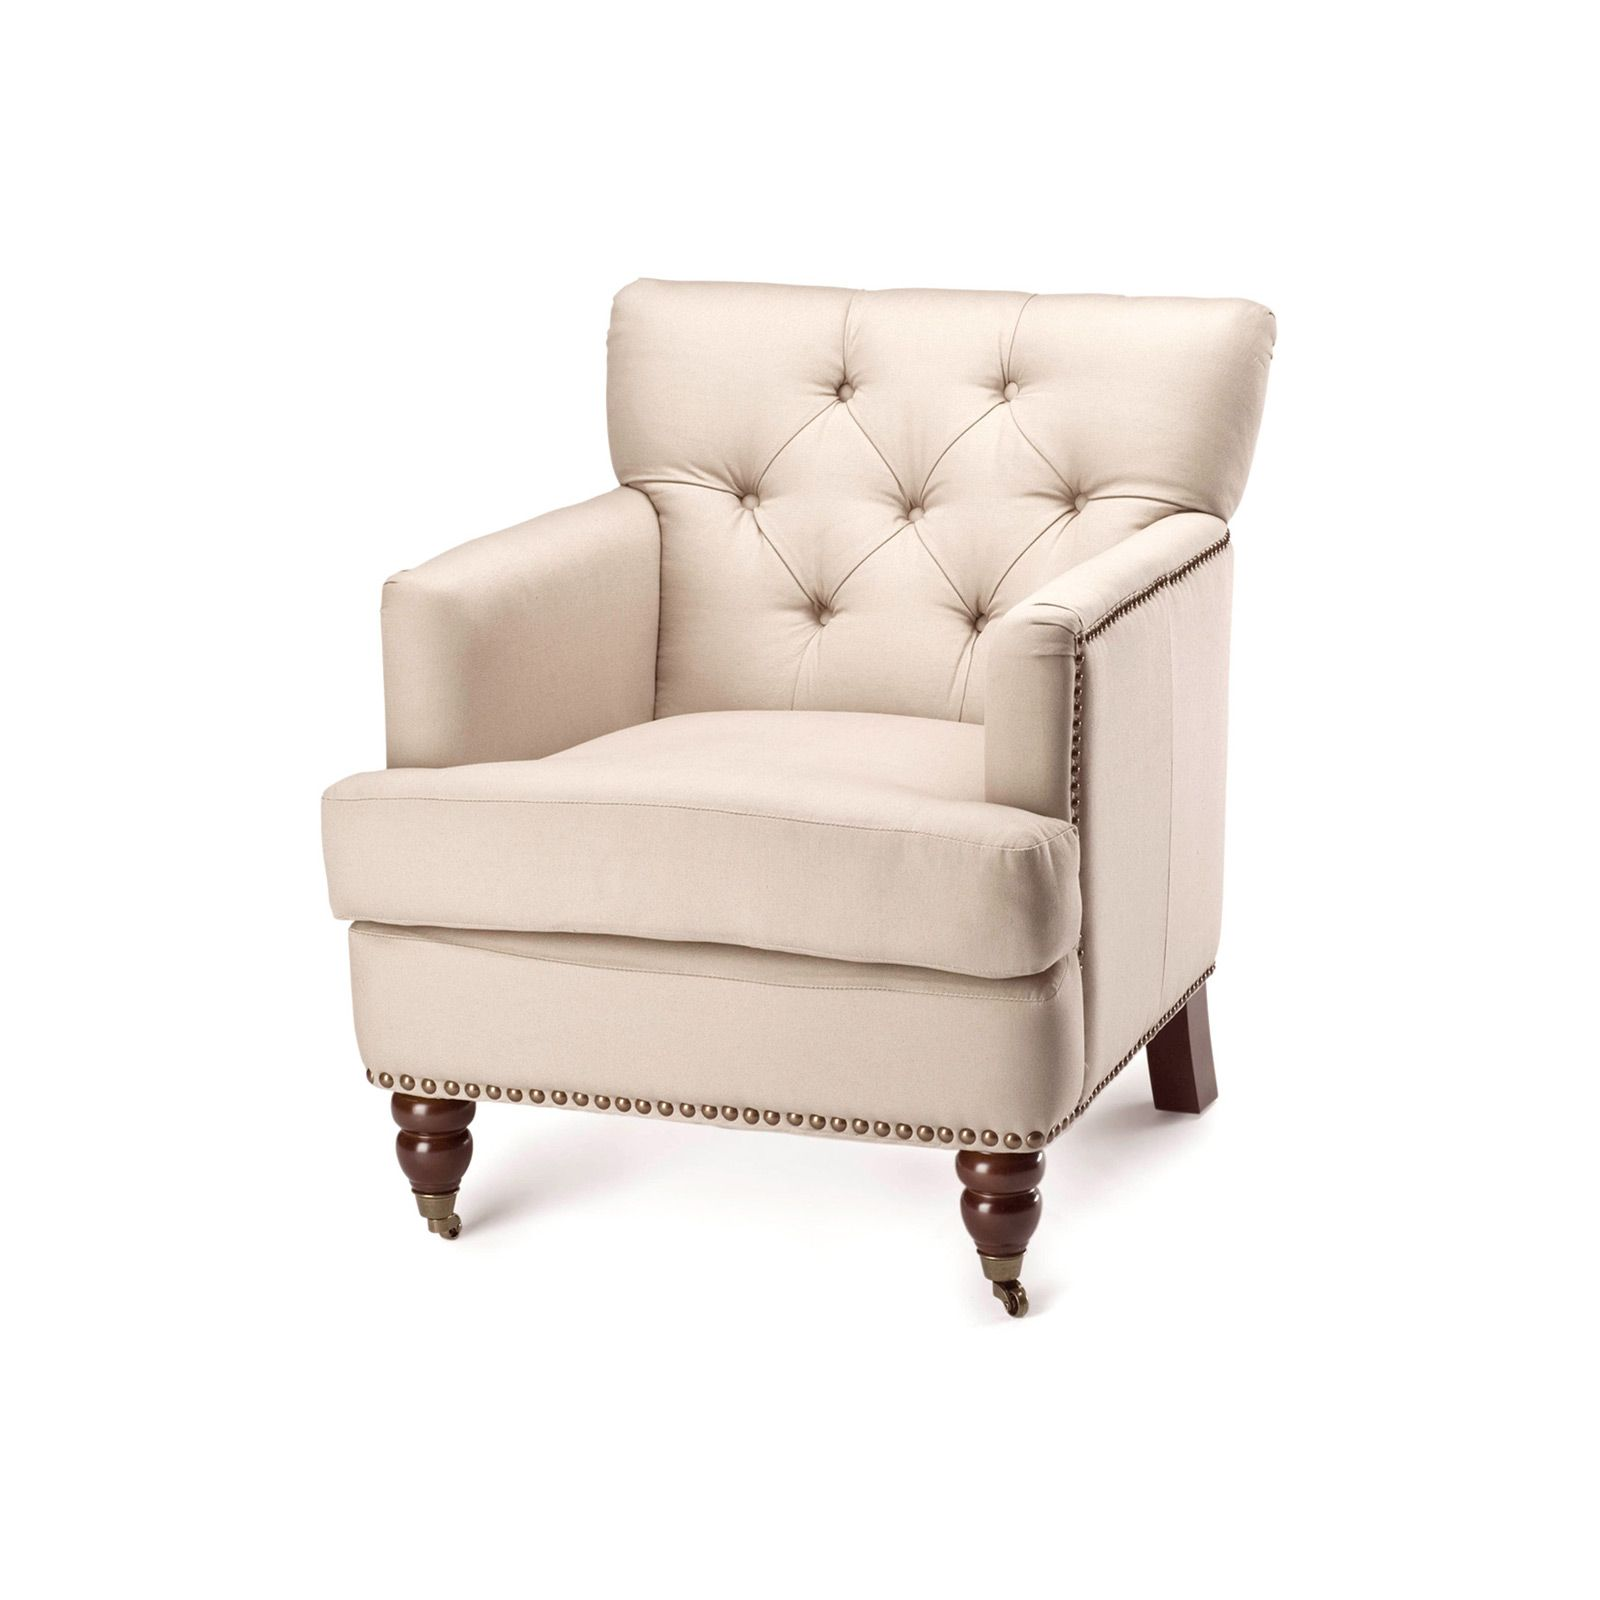 This mid century tufted club chairs is no longer available - Behold The Regal Tufted Club Chair An Elegant Study Of Mid Century D Cor Spiked